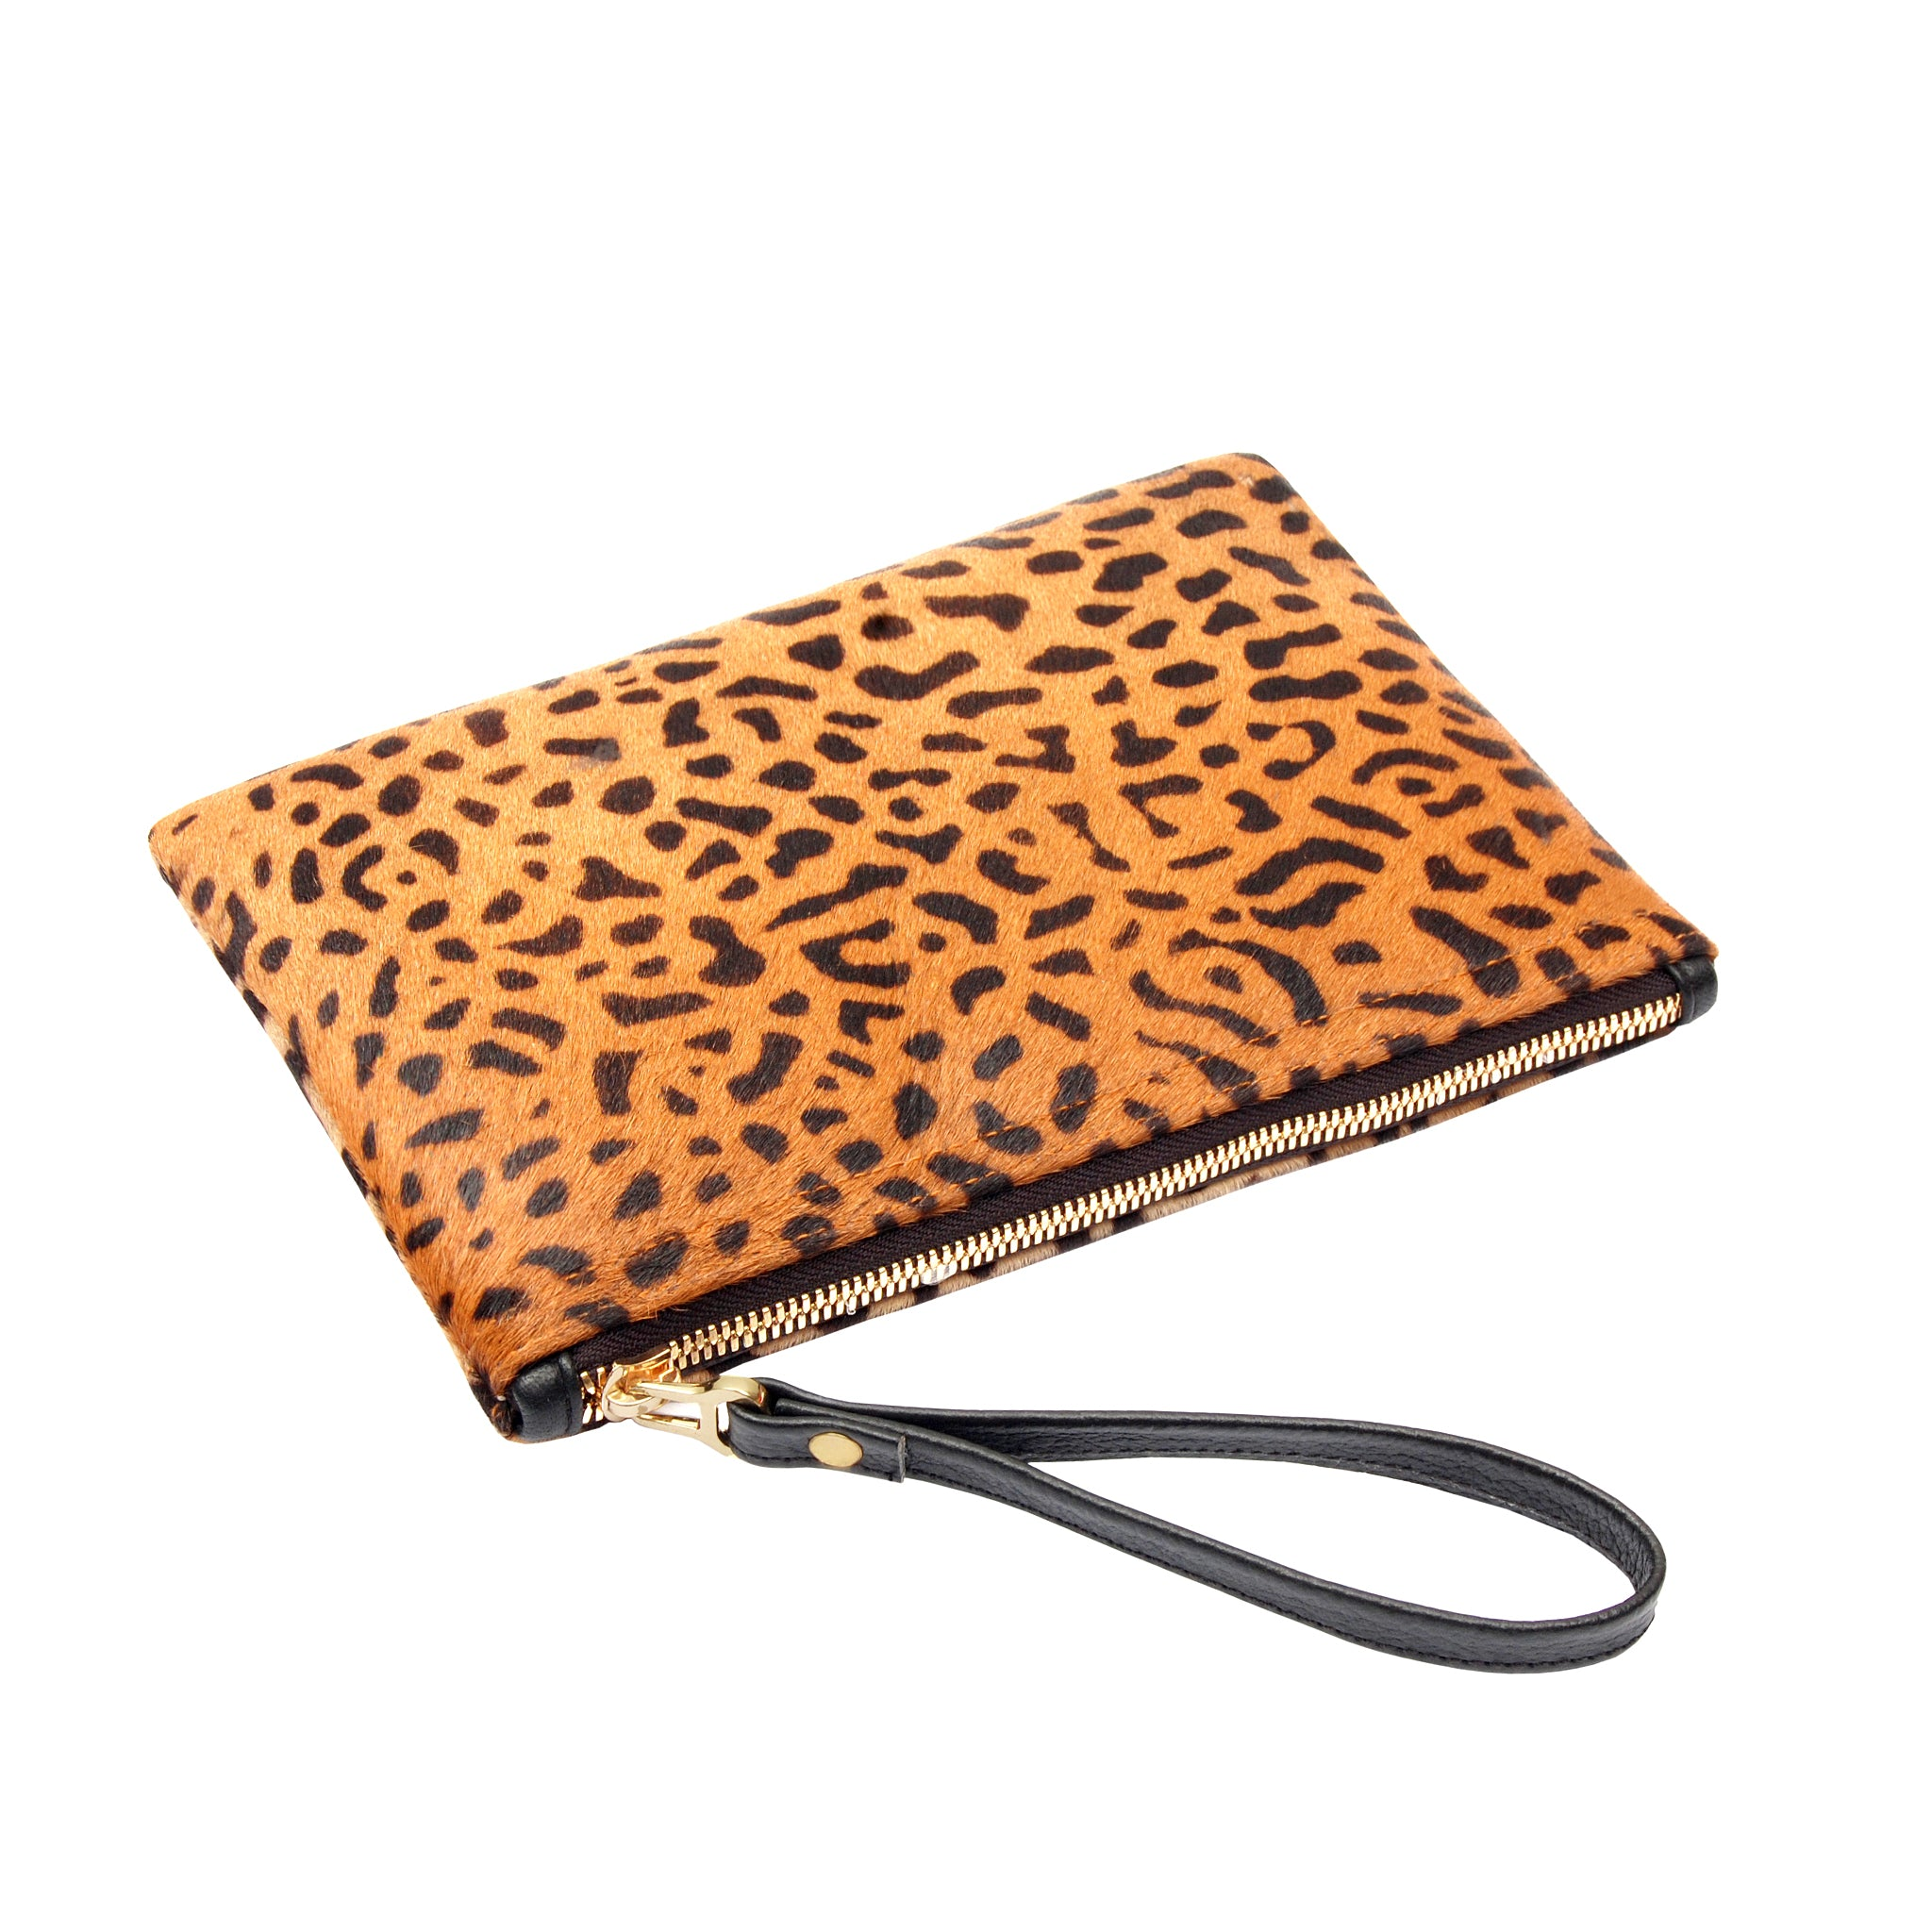 Flat Medium Spotted Leopard Wristlet Clutch Bag